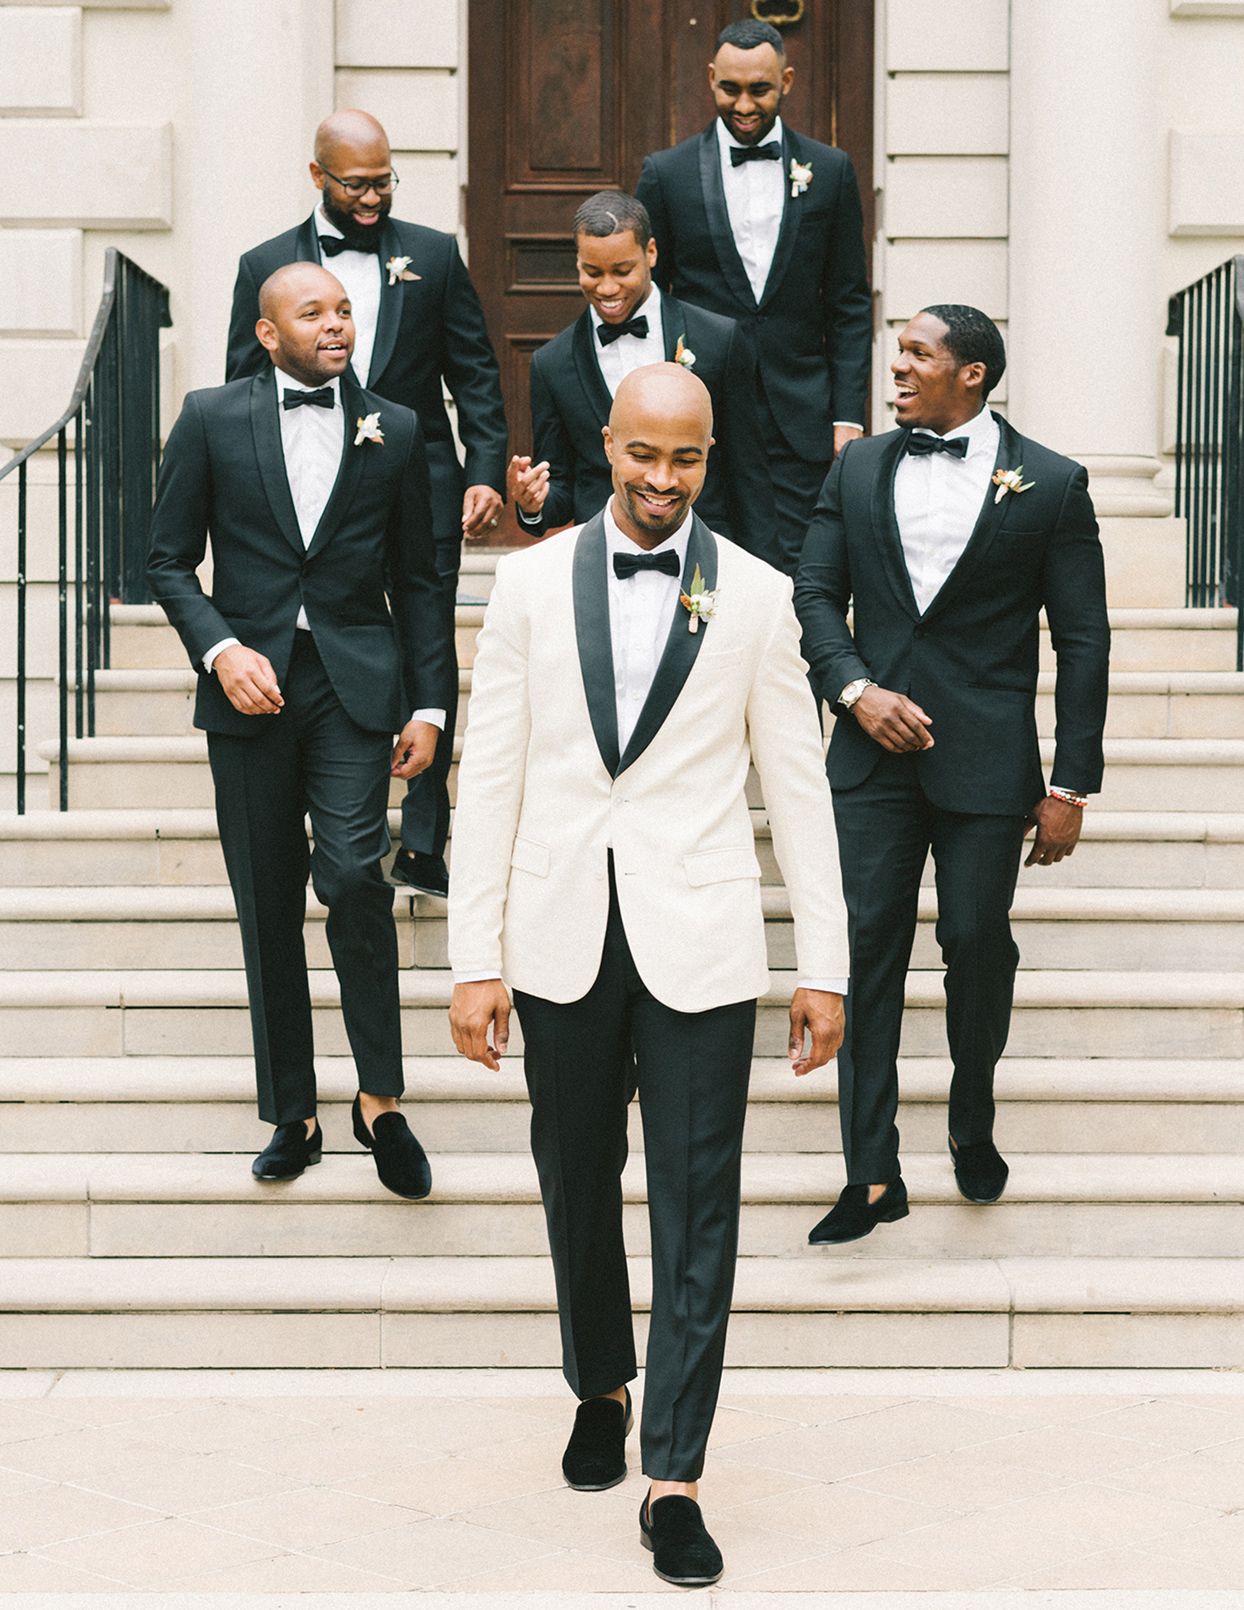 ericka meechaeyl wedding groomsmen walking down steps